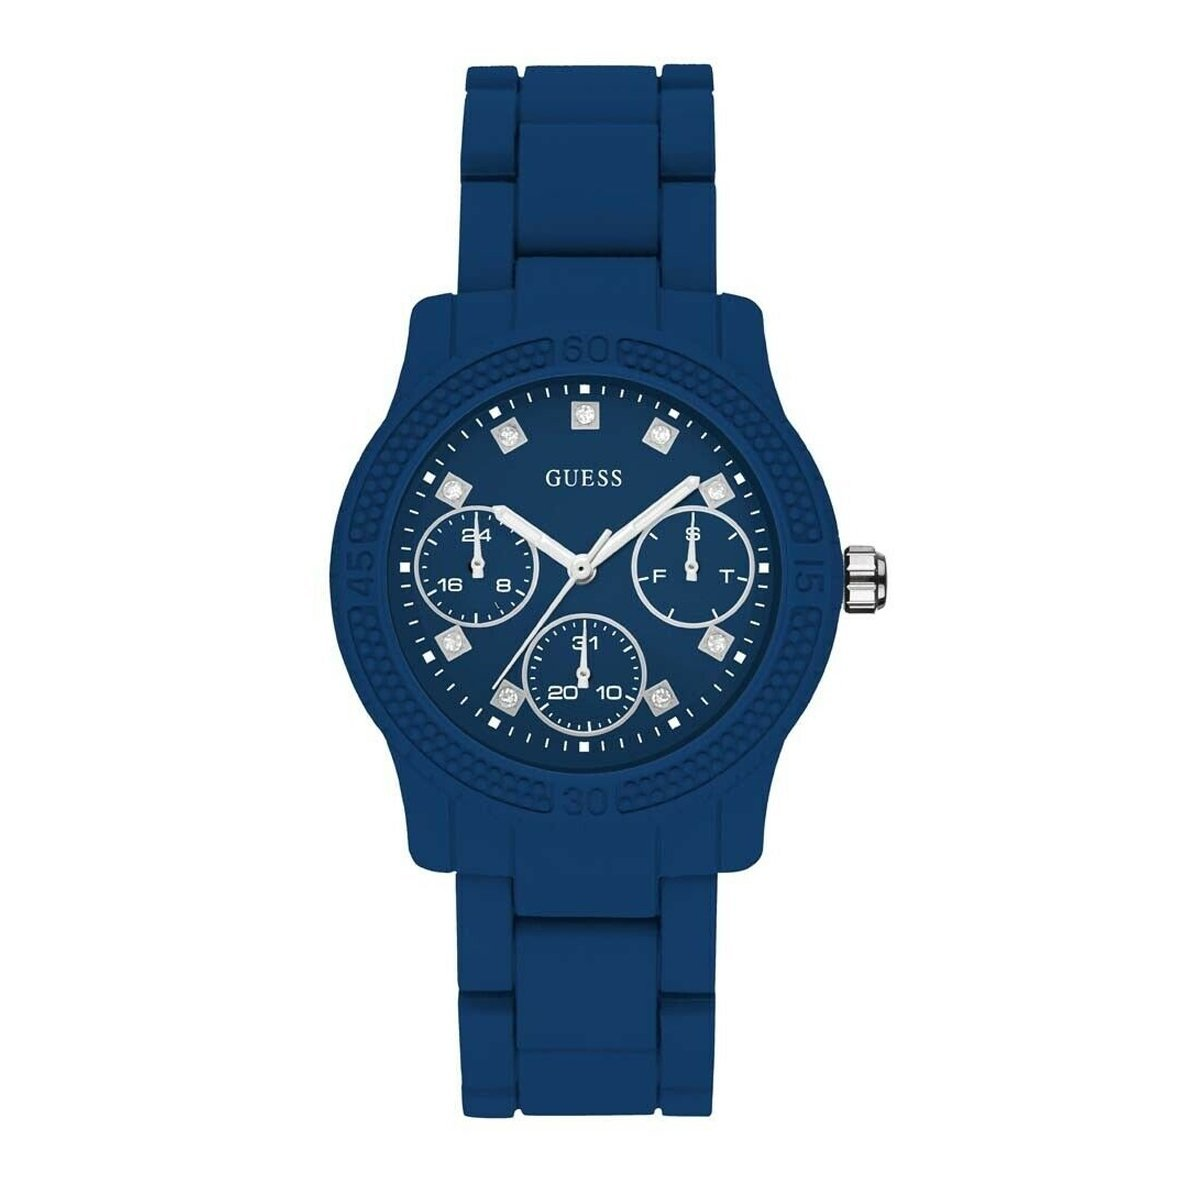 Guess Funfetti Day Date Blue - Watches & Crystals